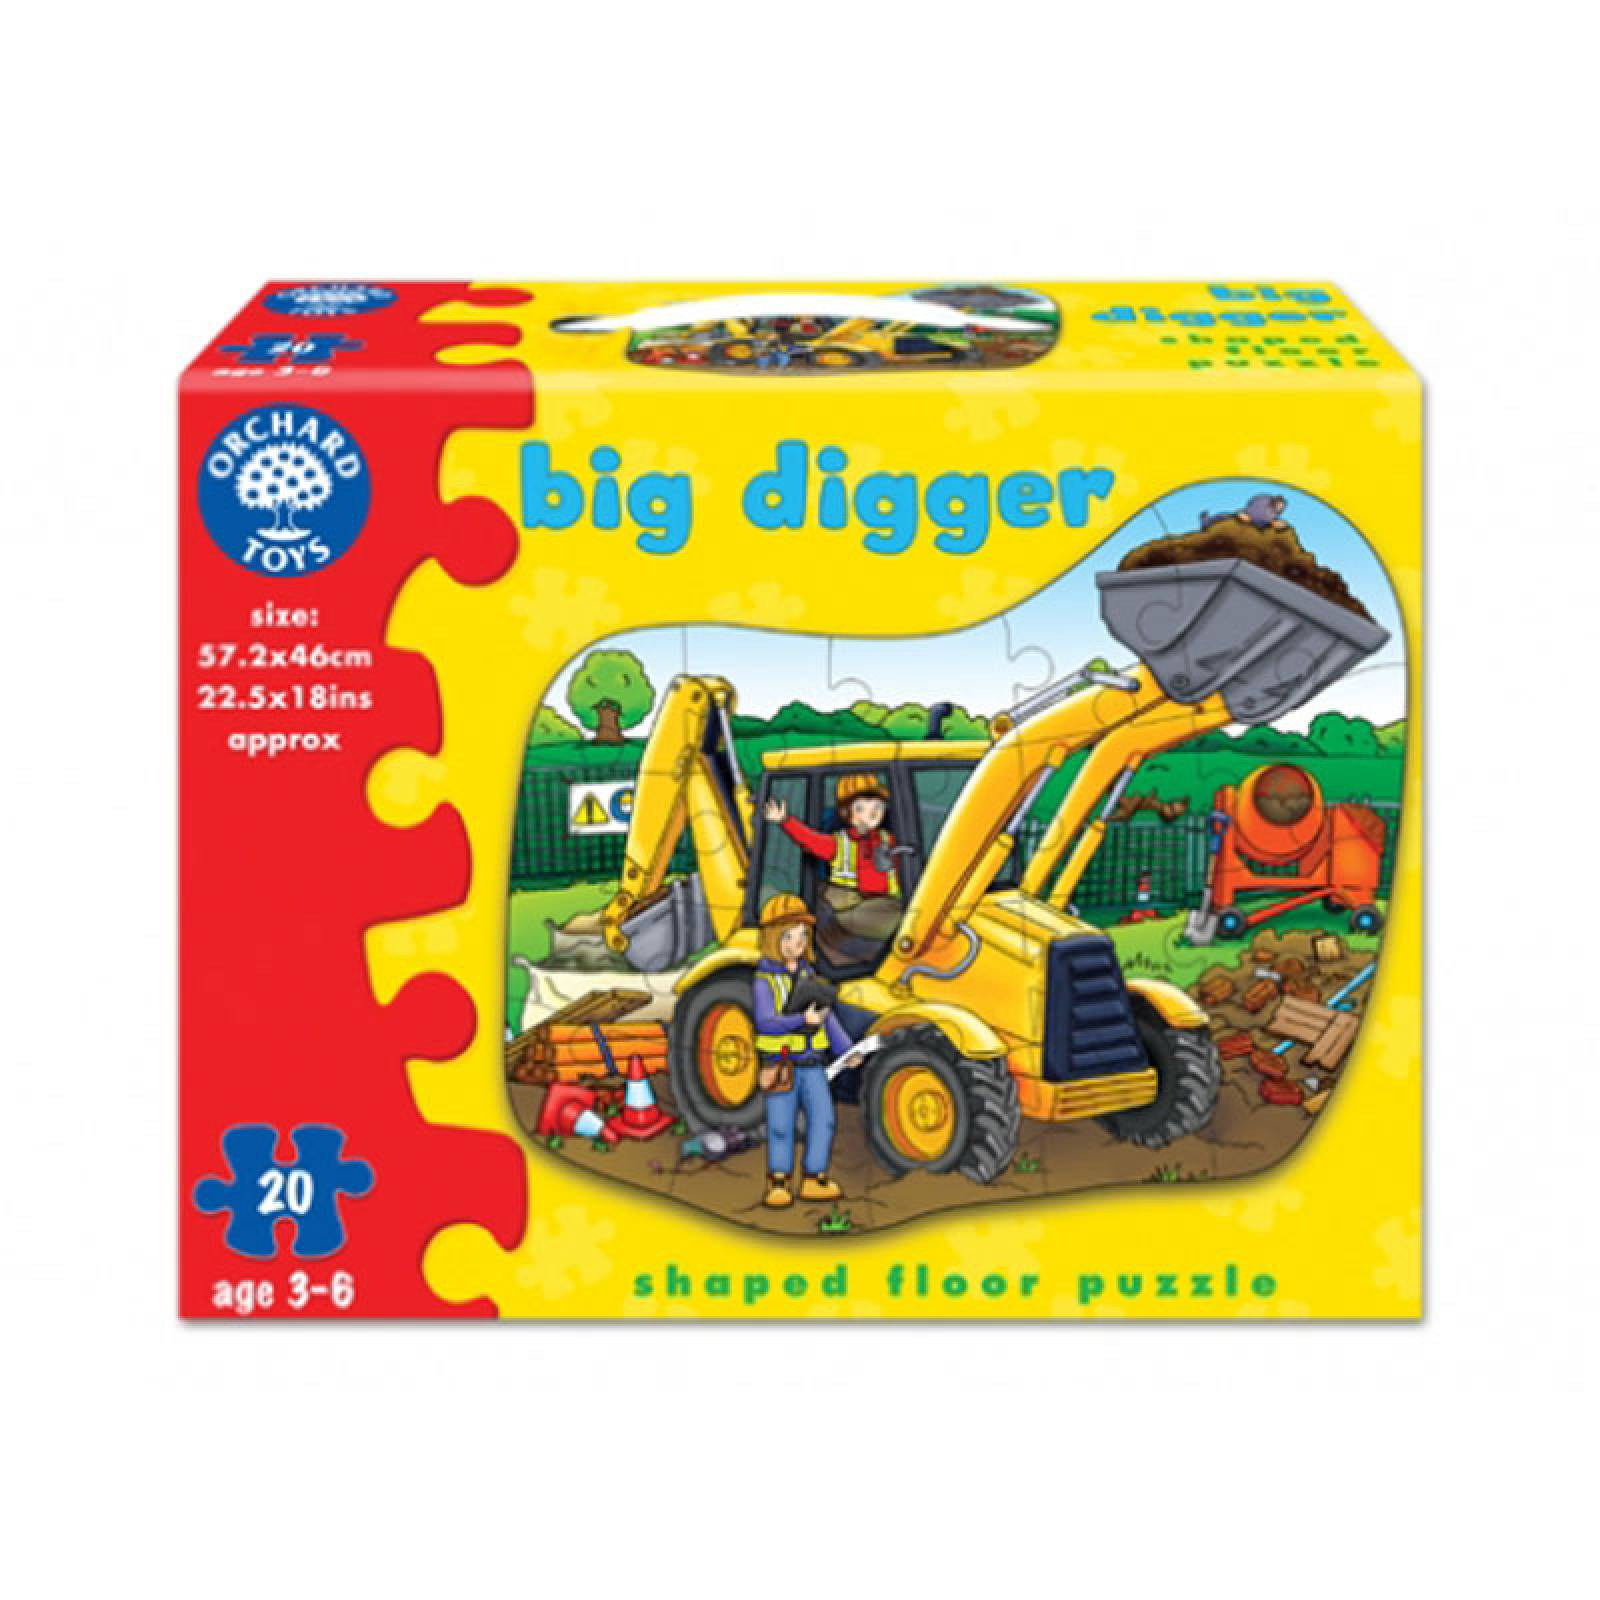 Big Digger Jigsaw Puzzle By Orchard Toys 3-6yrs thumbnails